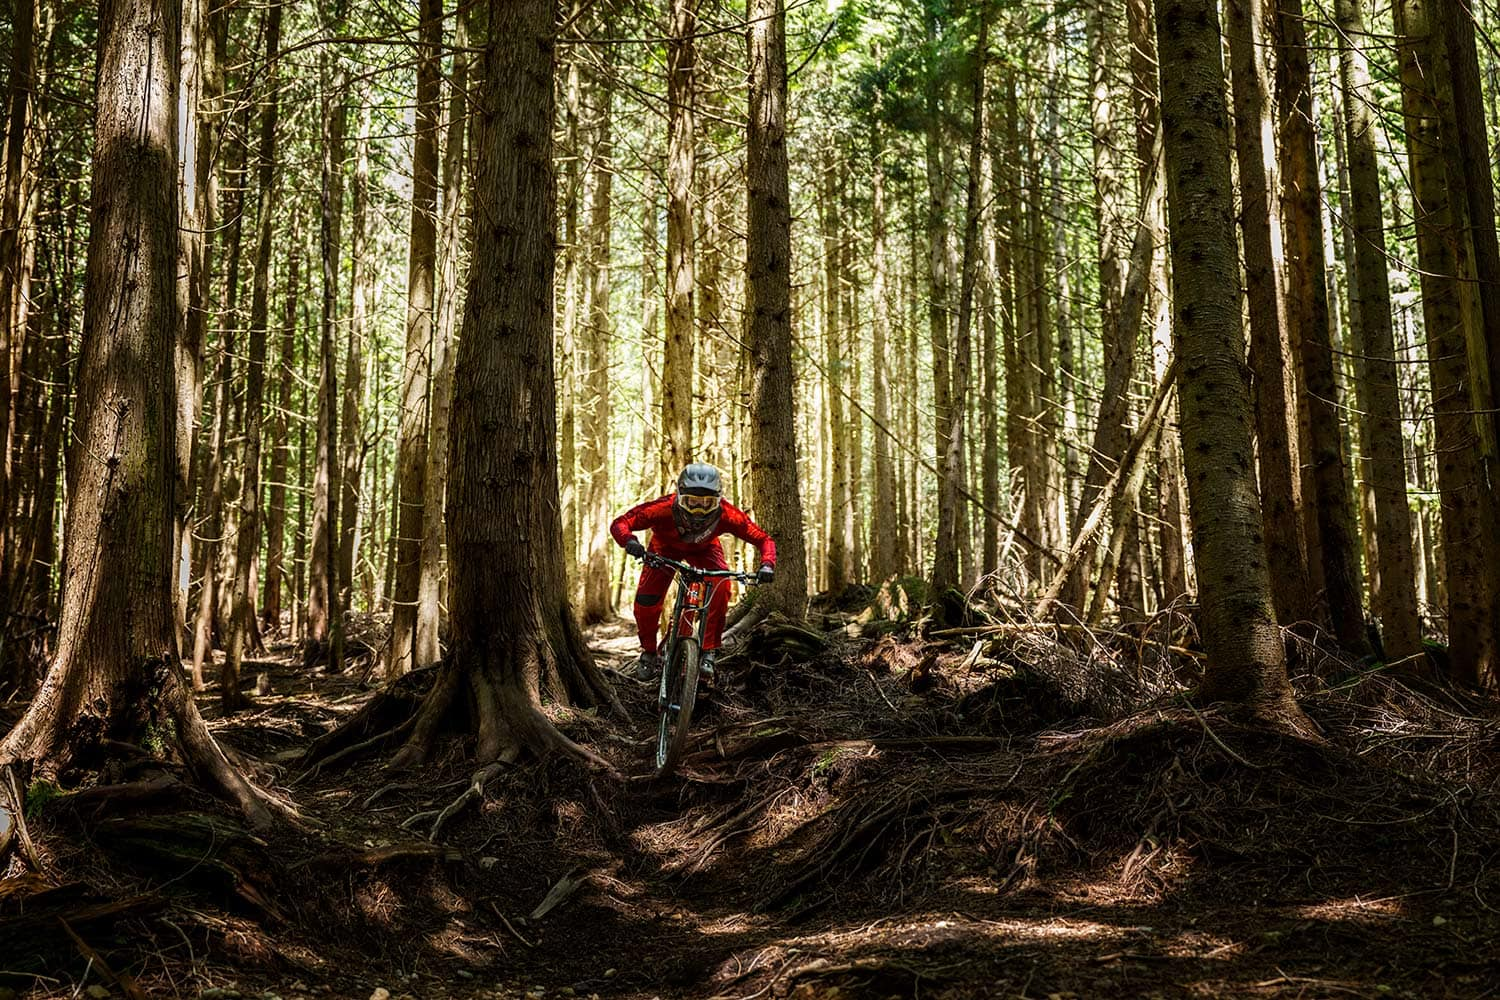 Athlete-Downhill-female-Mountain-Biker-Vaea-in-the-woods-Rod-McLean